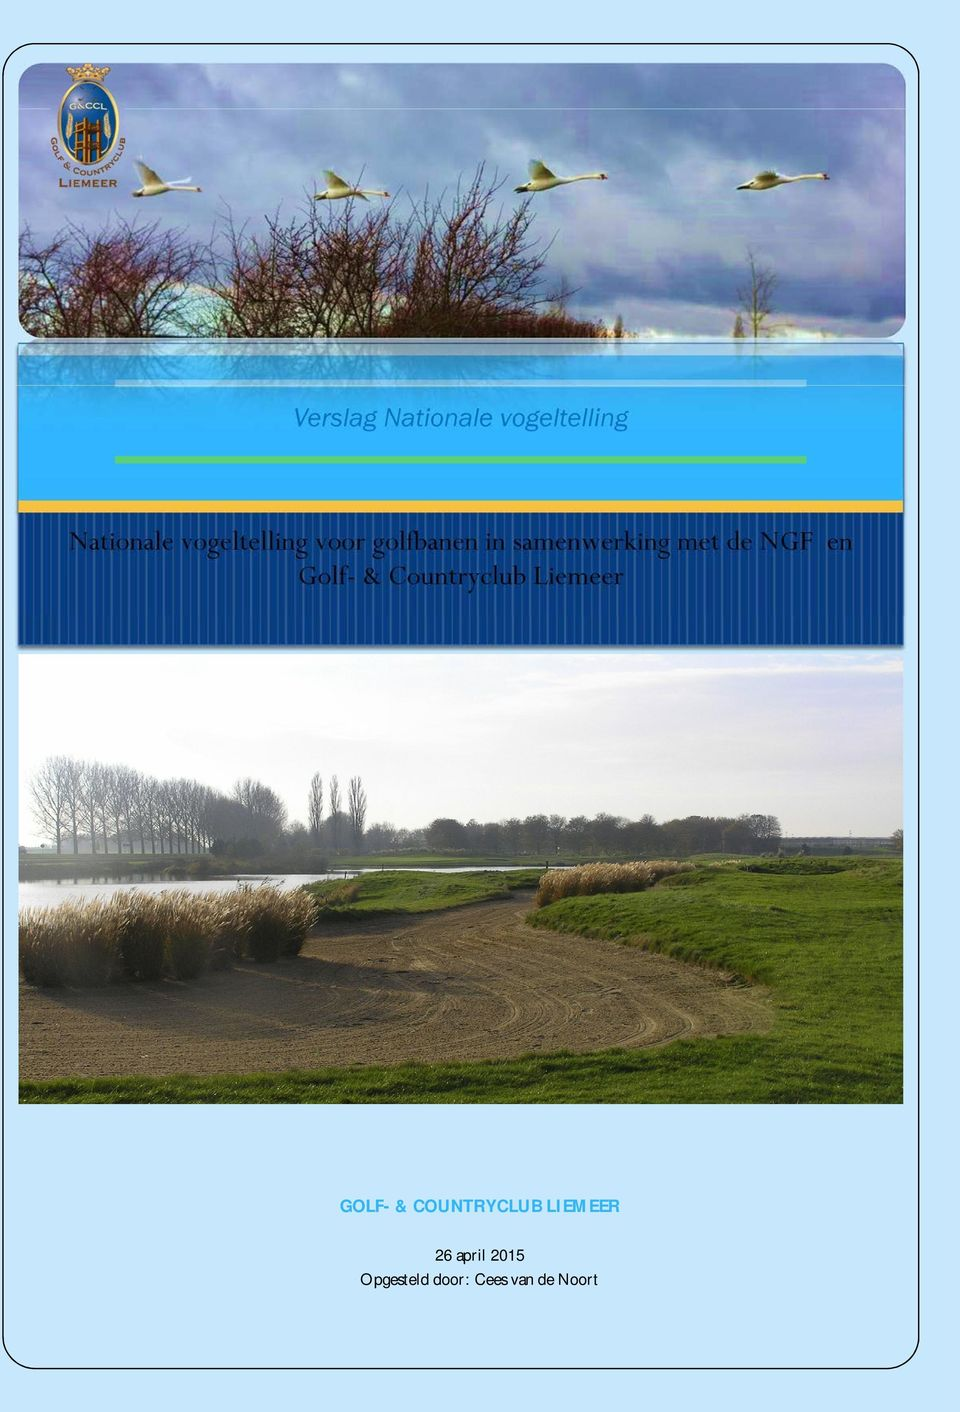 NGF en Golf- & Countryclub Liemeer GOLF- &